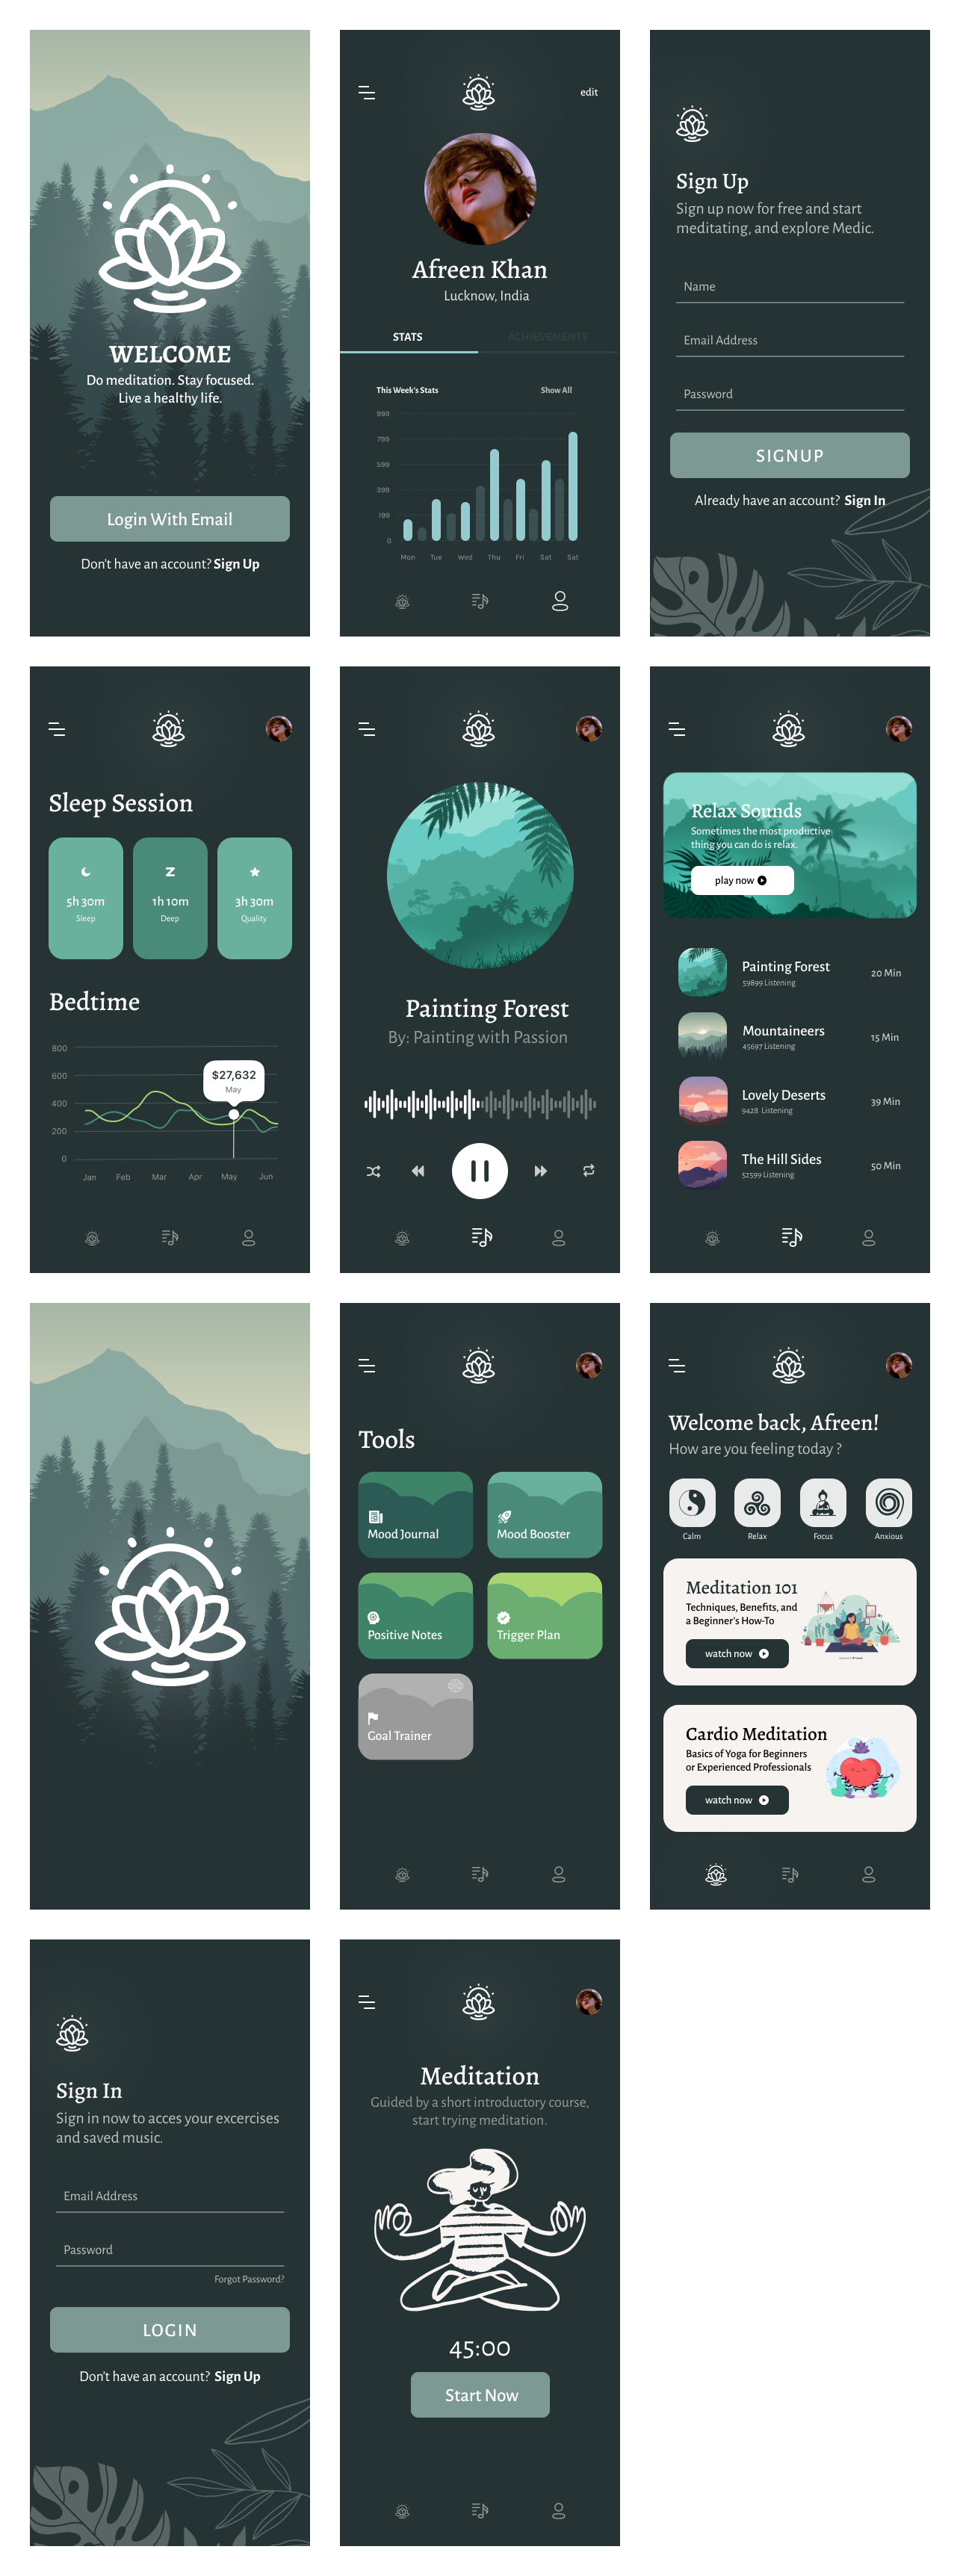 Medic Free Meditation App for Figma - Minimal and clean meditation app design, 11 screens for you to get started.